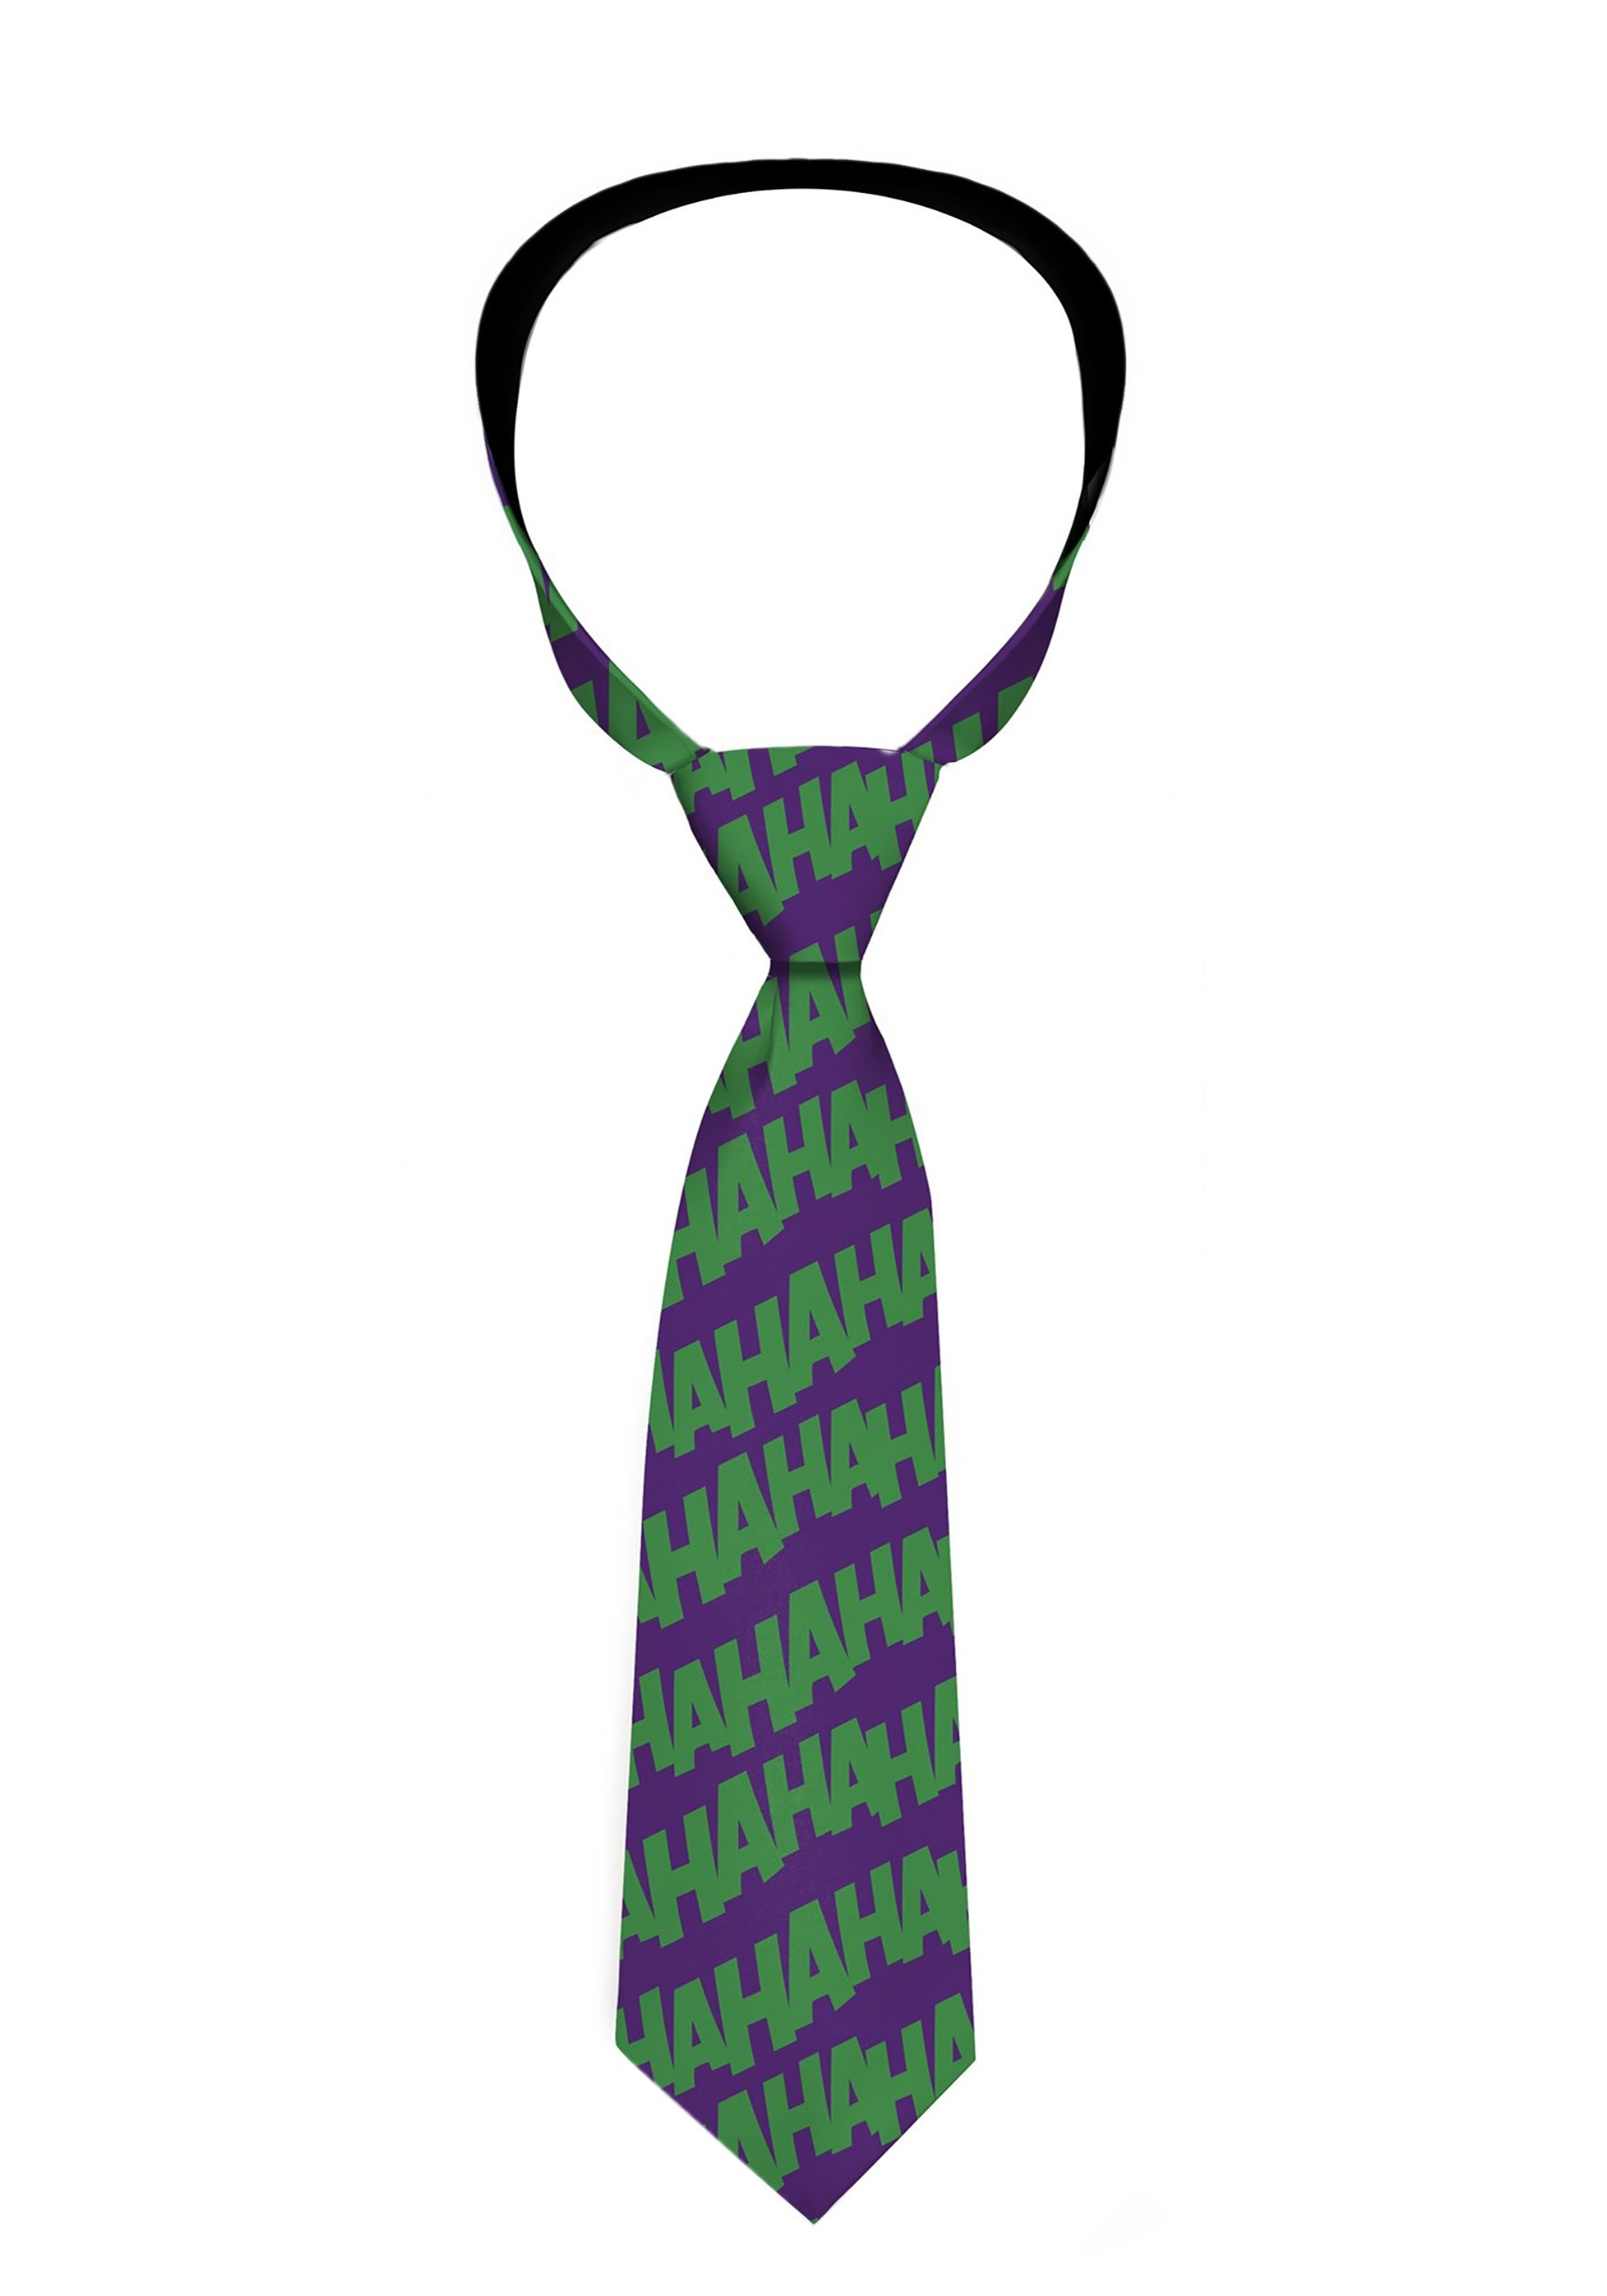 The_Joker_HaHaHa_Necktie